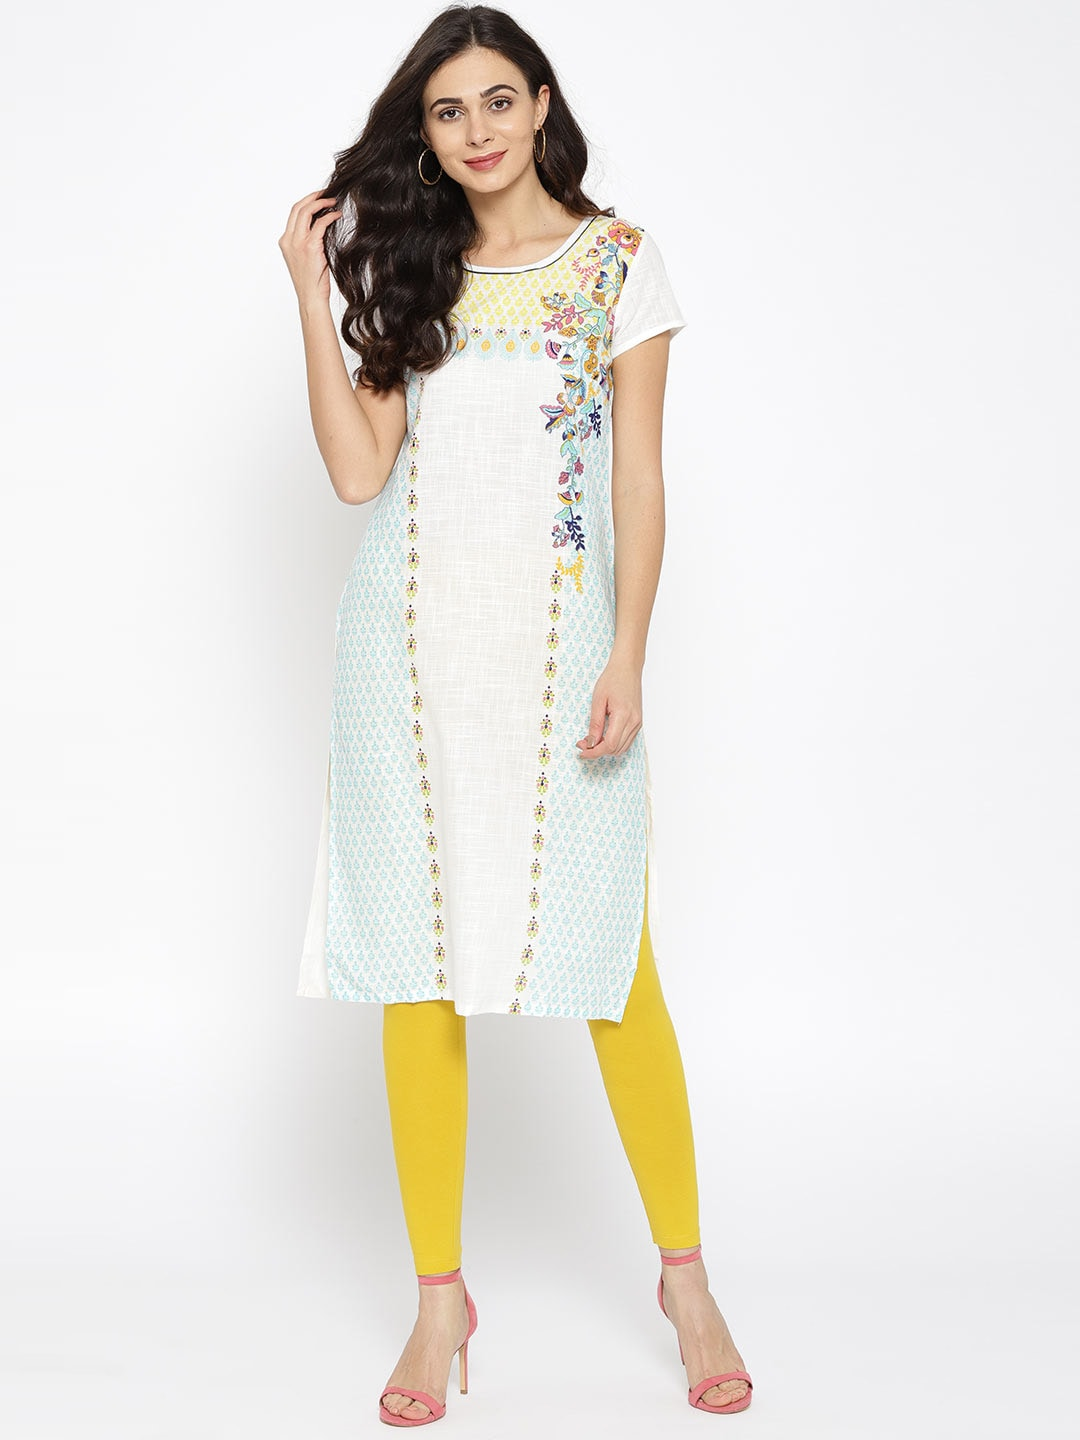 Weaves Kurtas - Buy Weaves Kurtas online in India dad3921c23